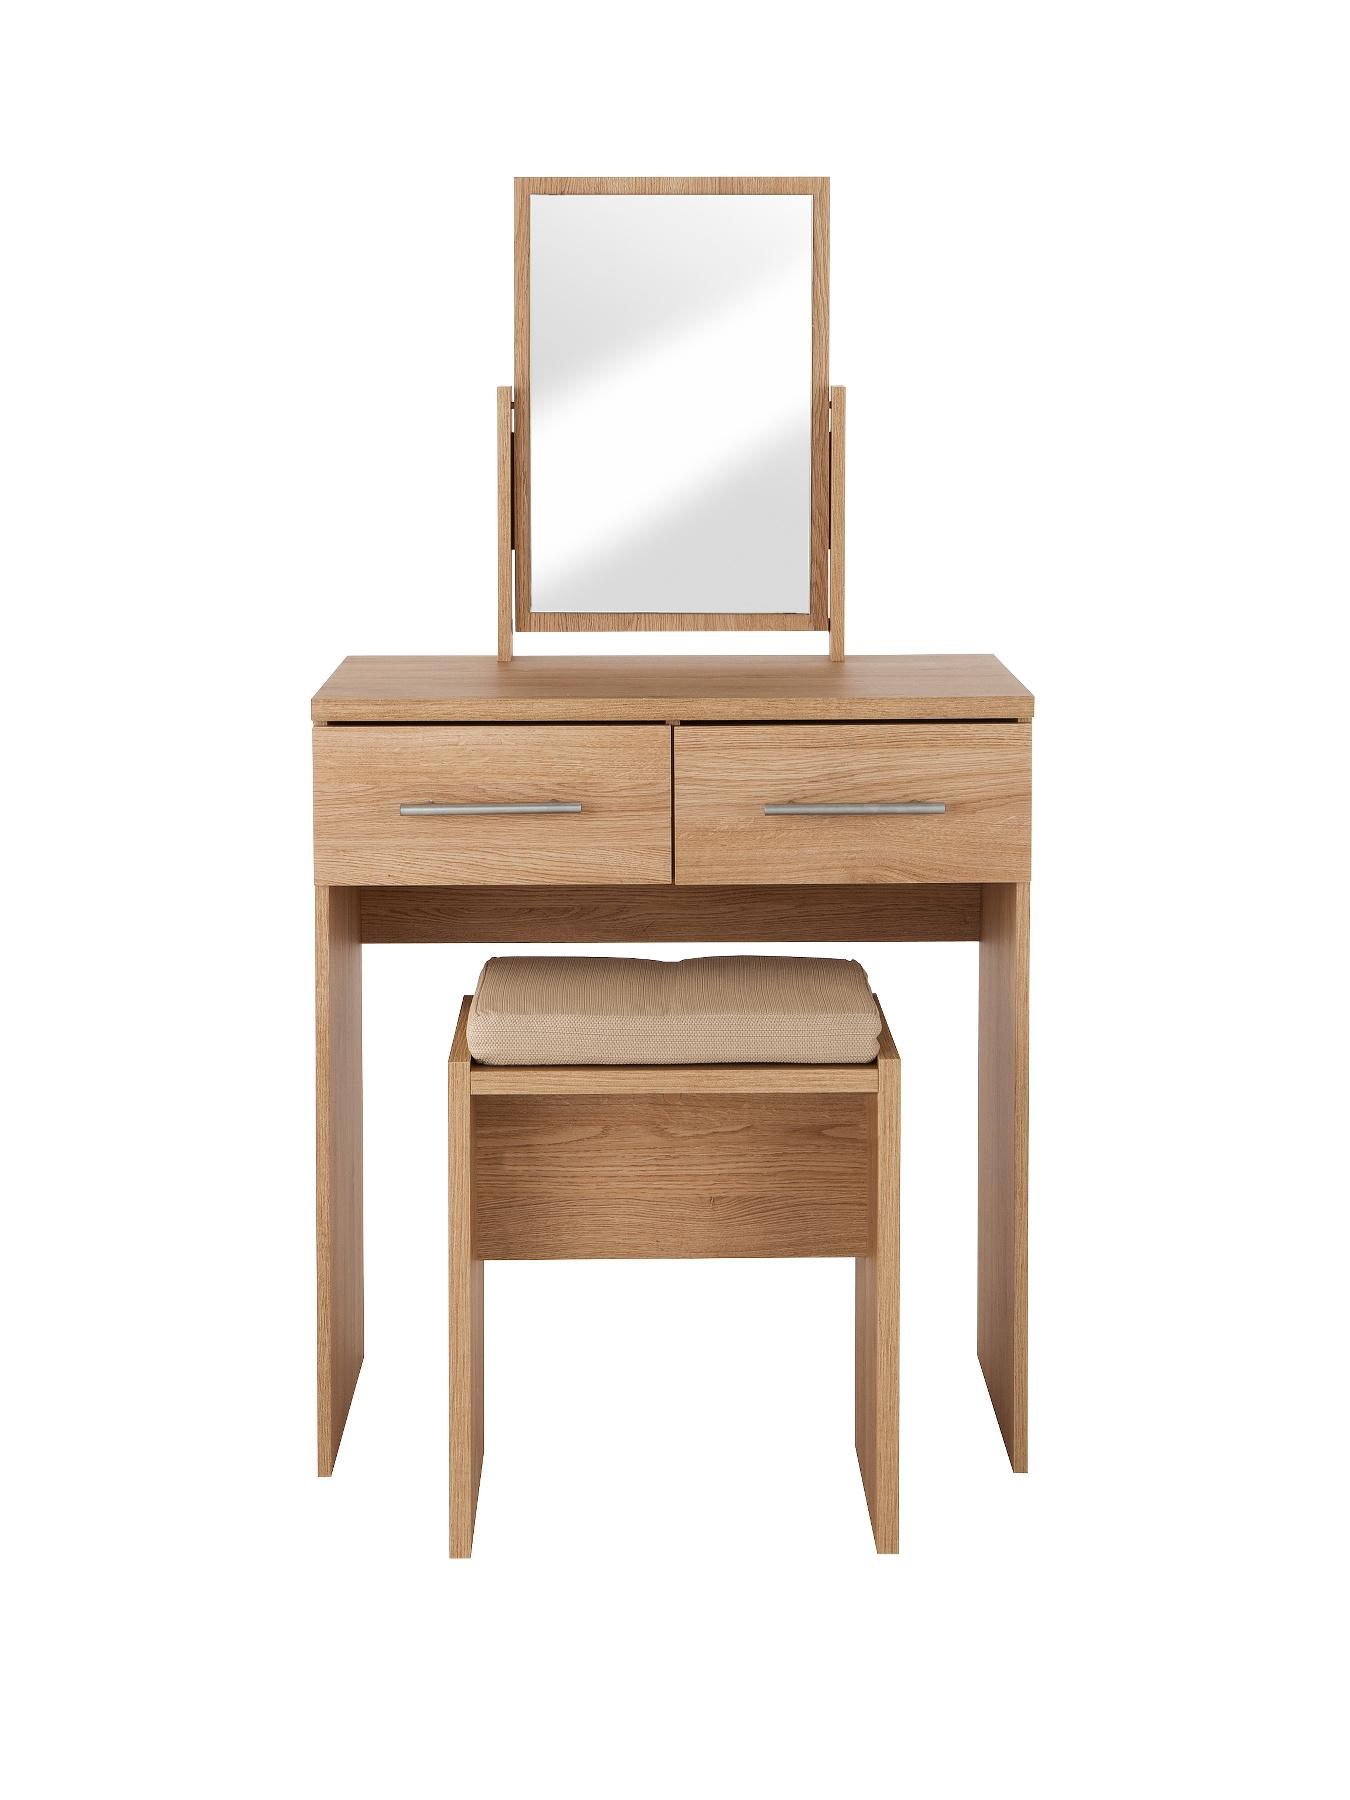 New Prague Dressing Table, Stool and Mirror Set, Black,White